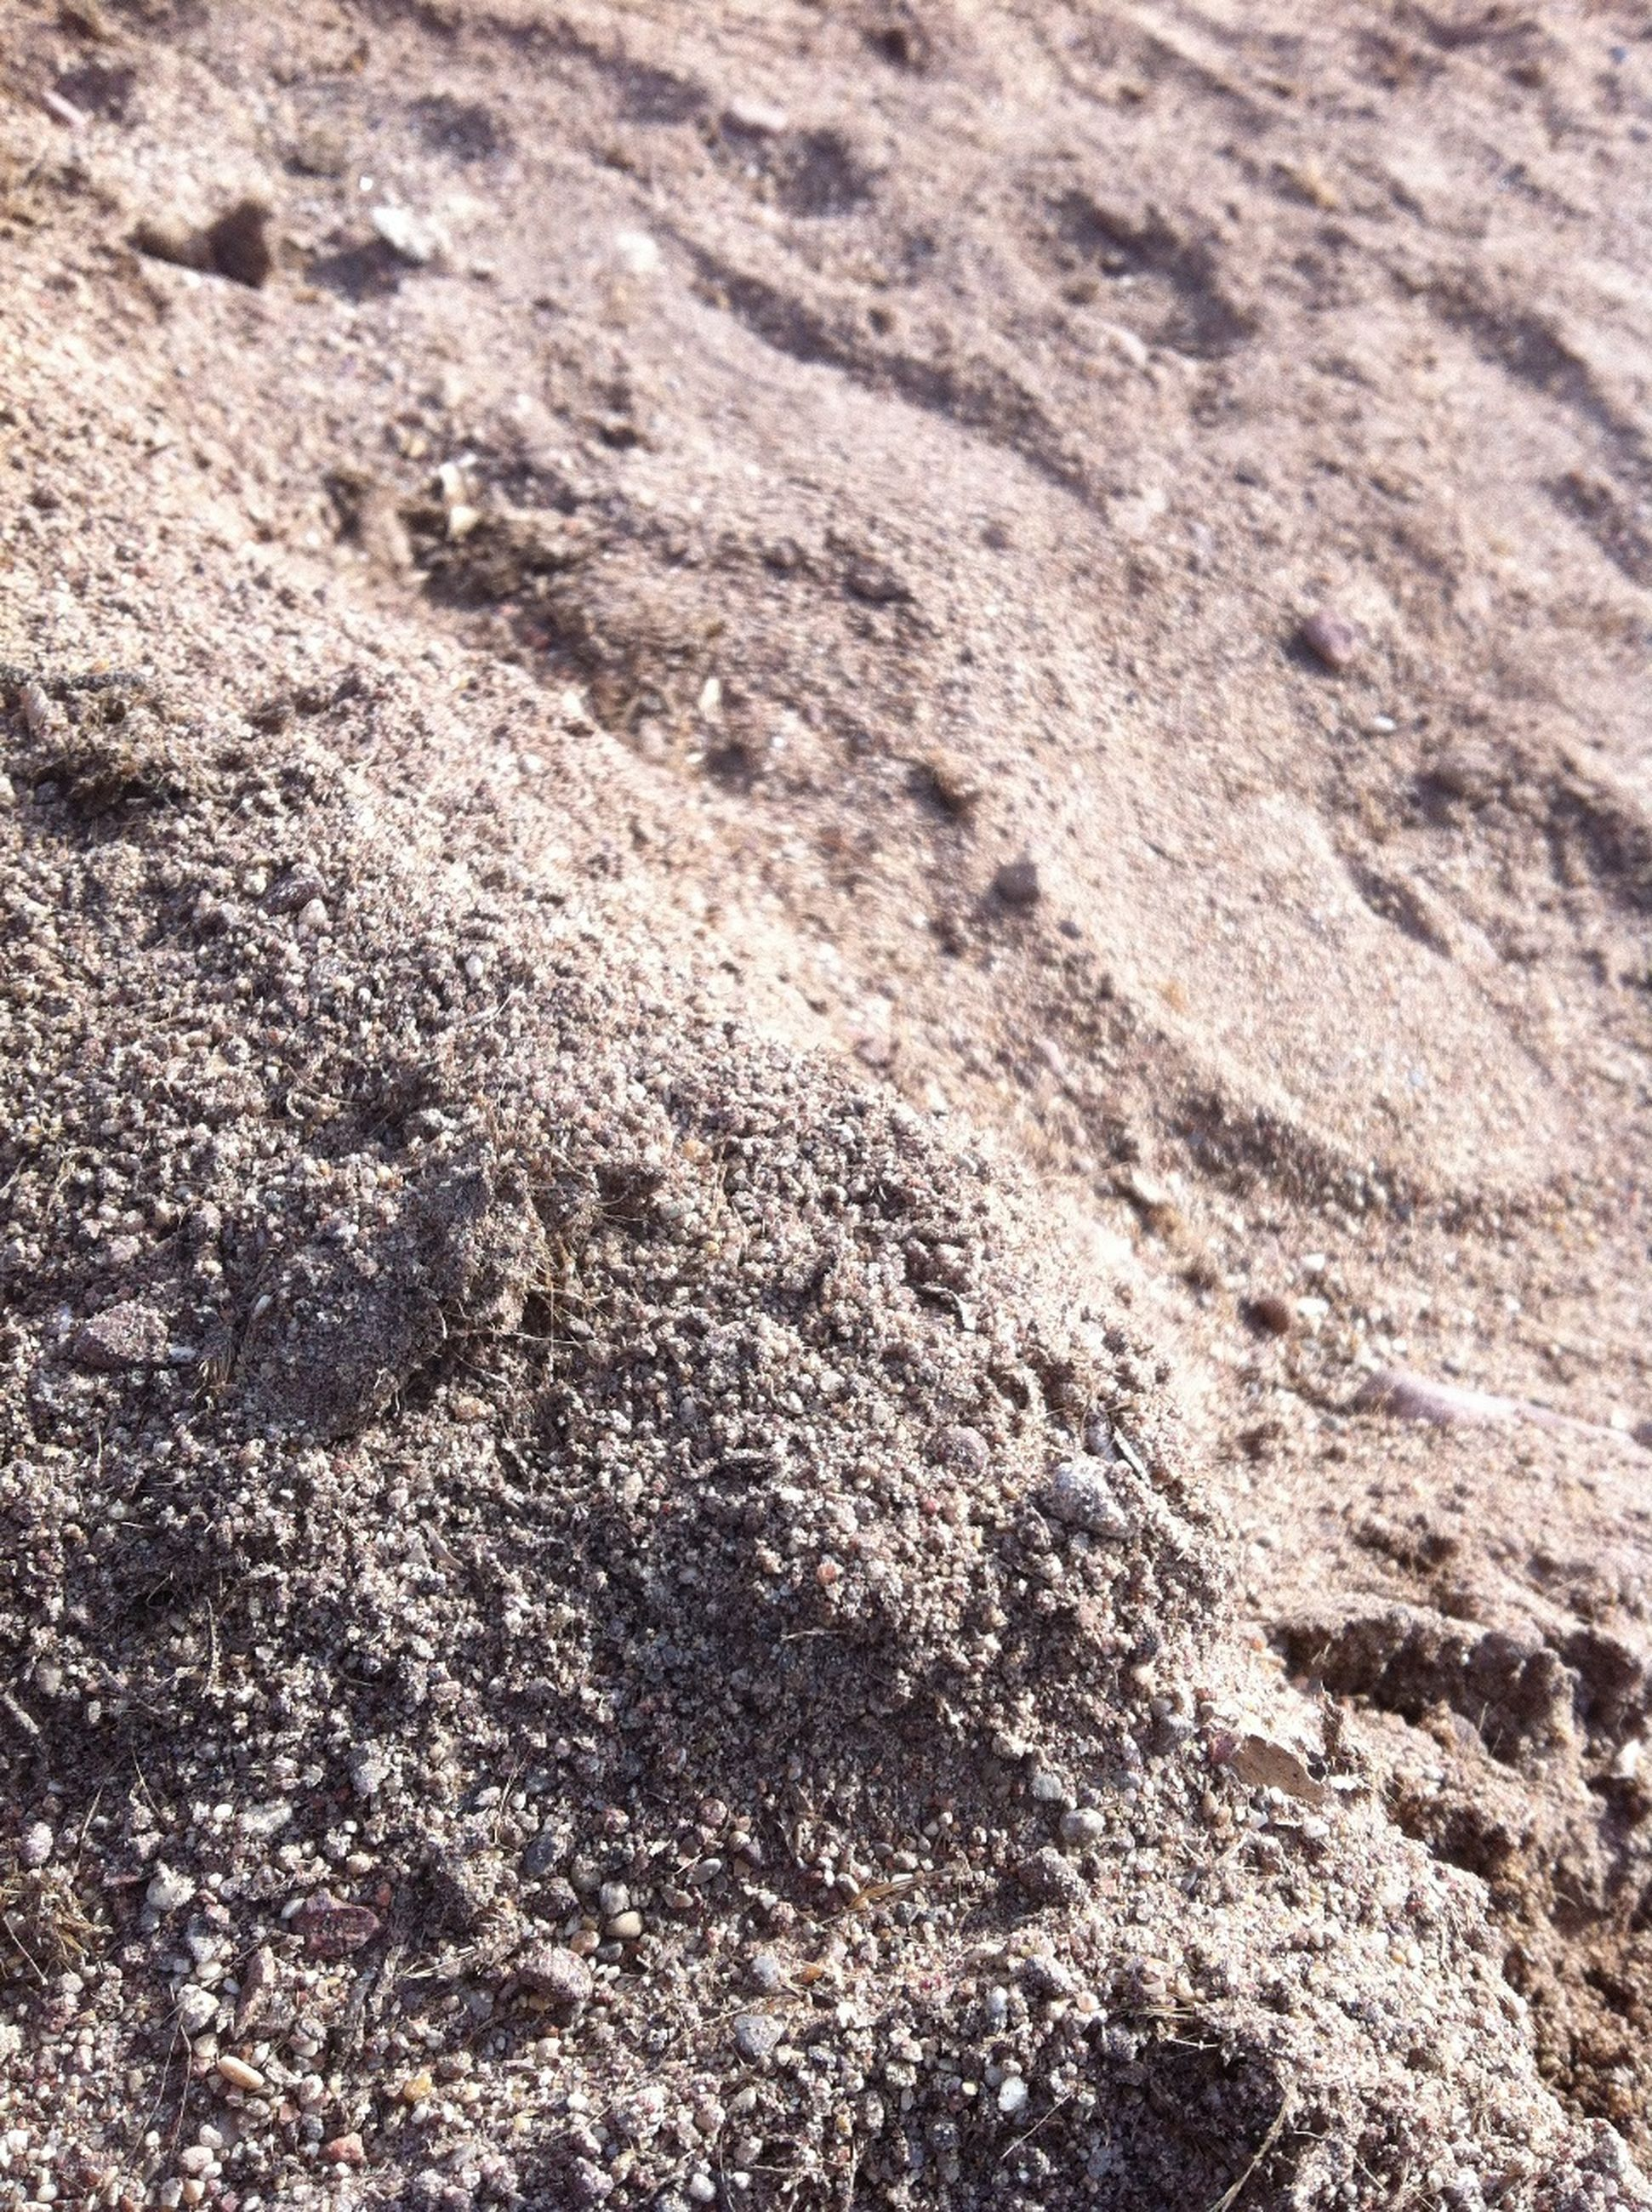 full frame, textured, backgrounds, rough, high angle view, pattern, close-up, nature, no people, day, outdoors, natural pattern, detail, tranquility, sand, cracked, sunlight, abstract, brown, beauty in nature